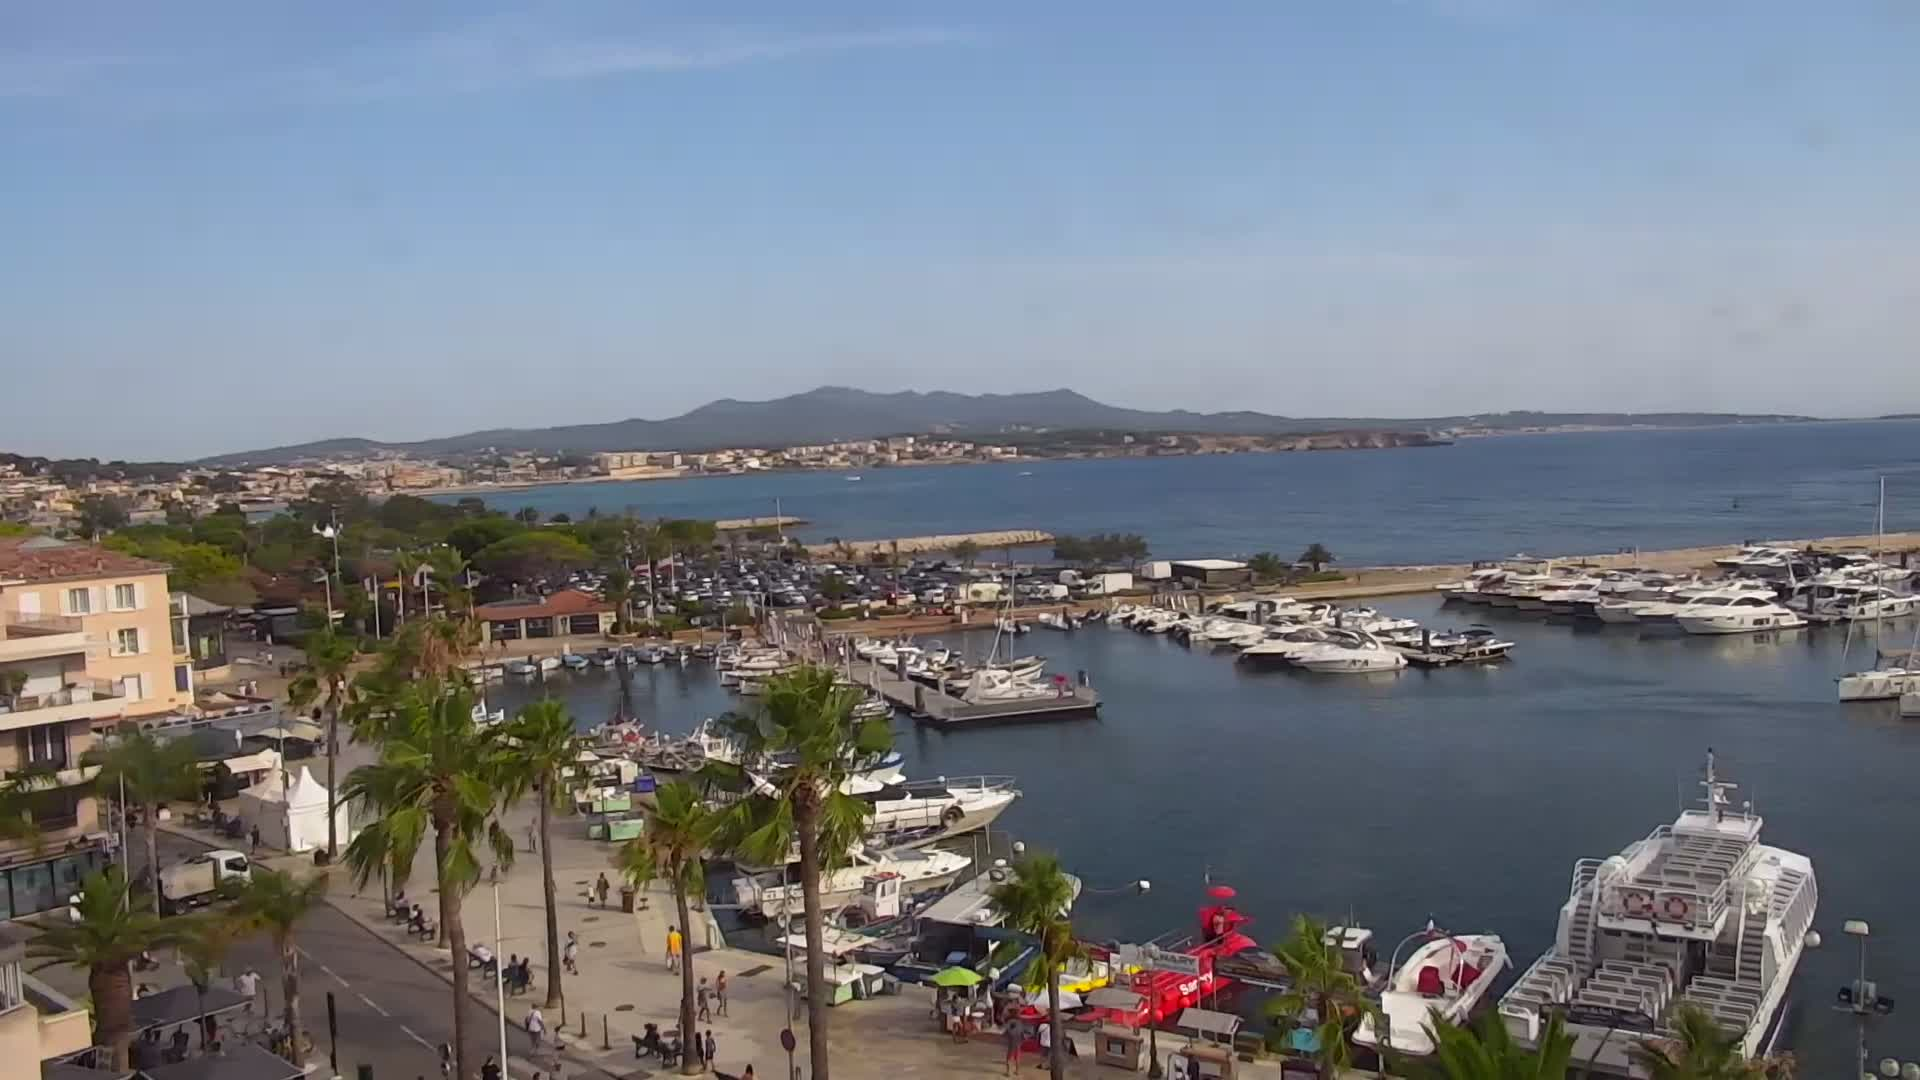 Webcam du port de Sanary-sur-Mer